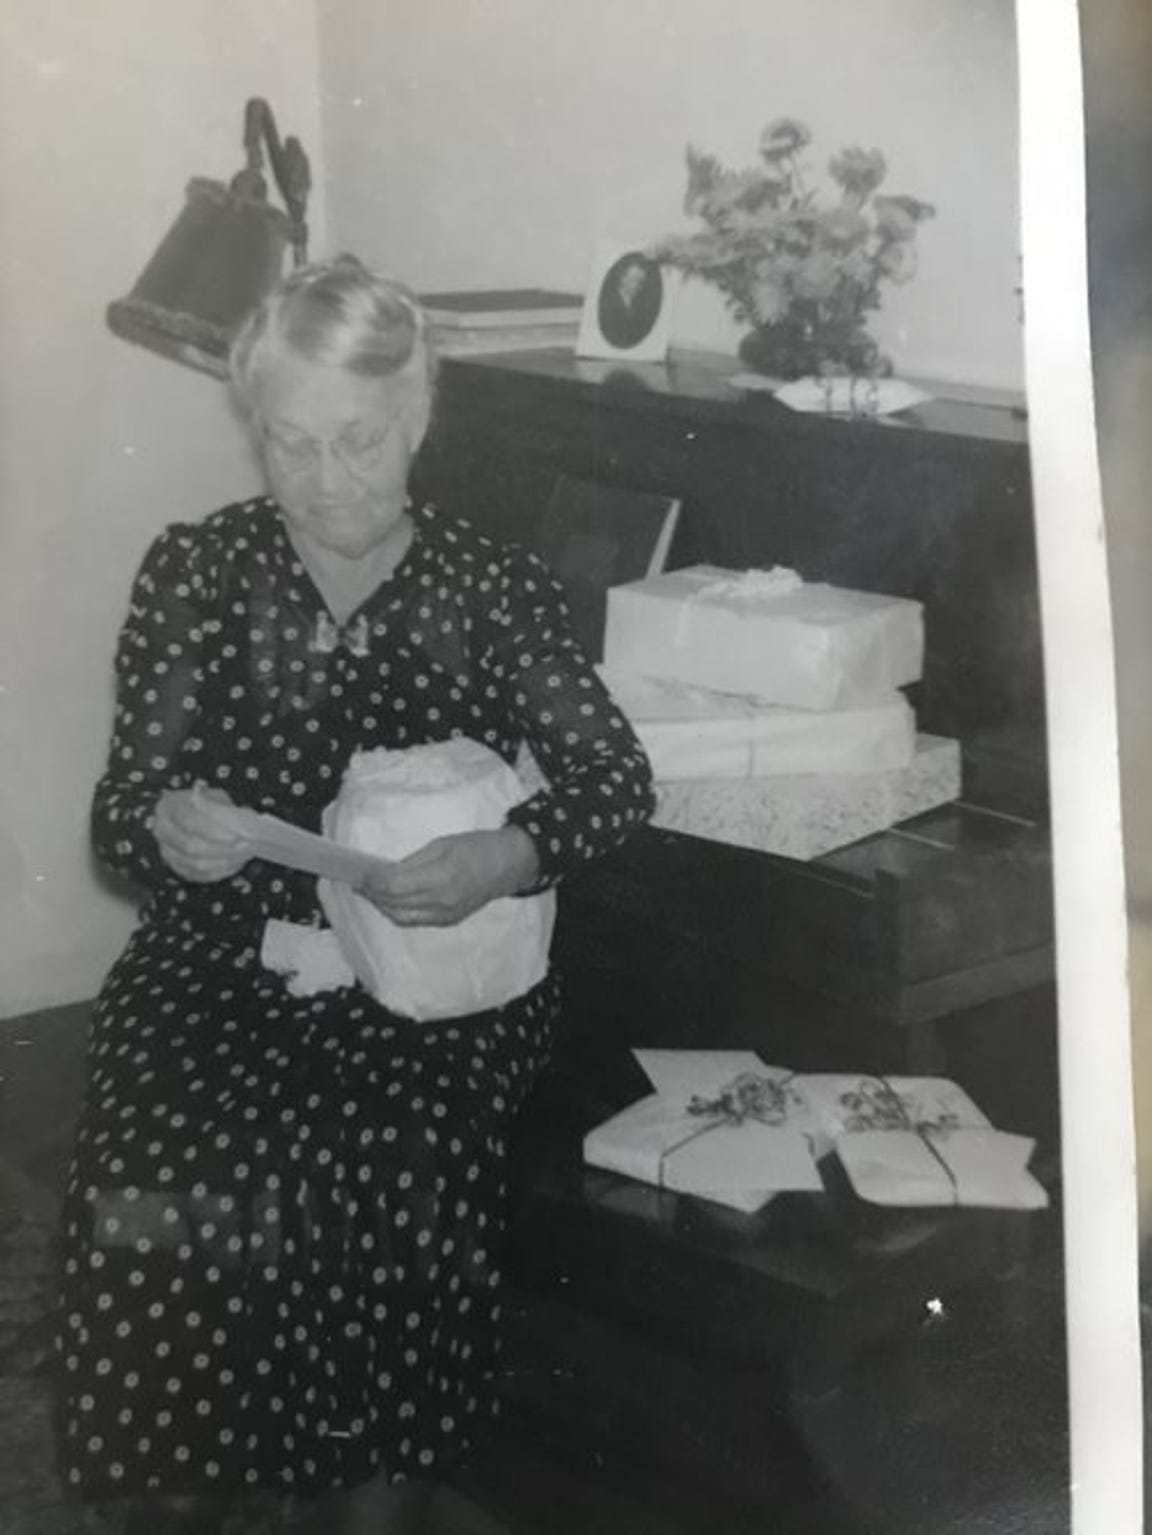 Marie Soderstrom, Sharon's adoptive grandmother, in an undated photo. She was the mother of Faith Morrow, who adopted the Hatbox Baby two months after the child was found abandoned in the desert.